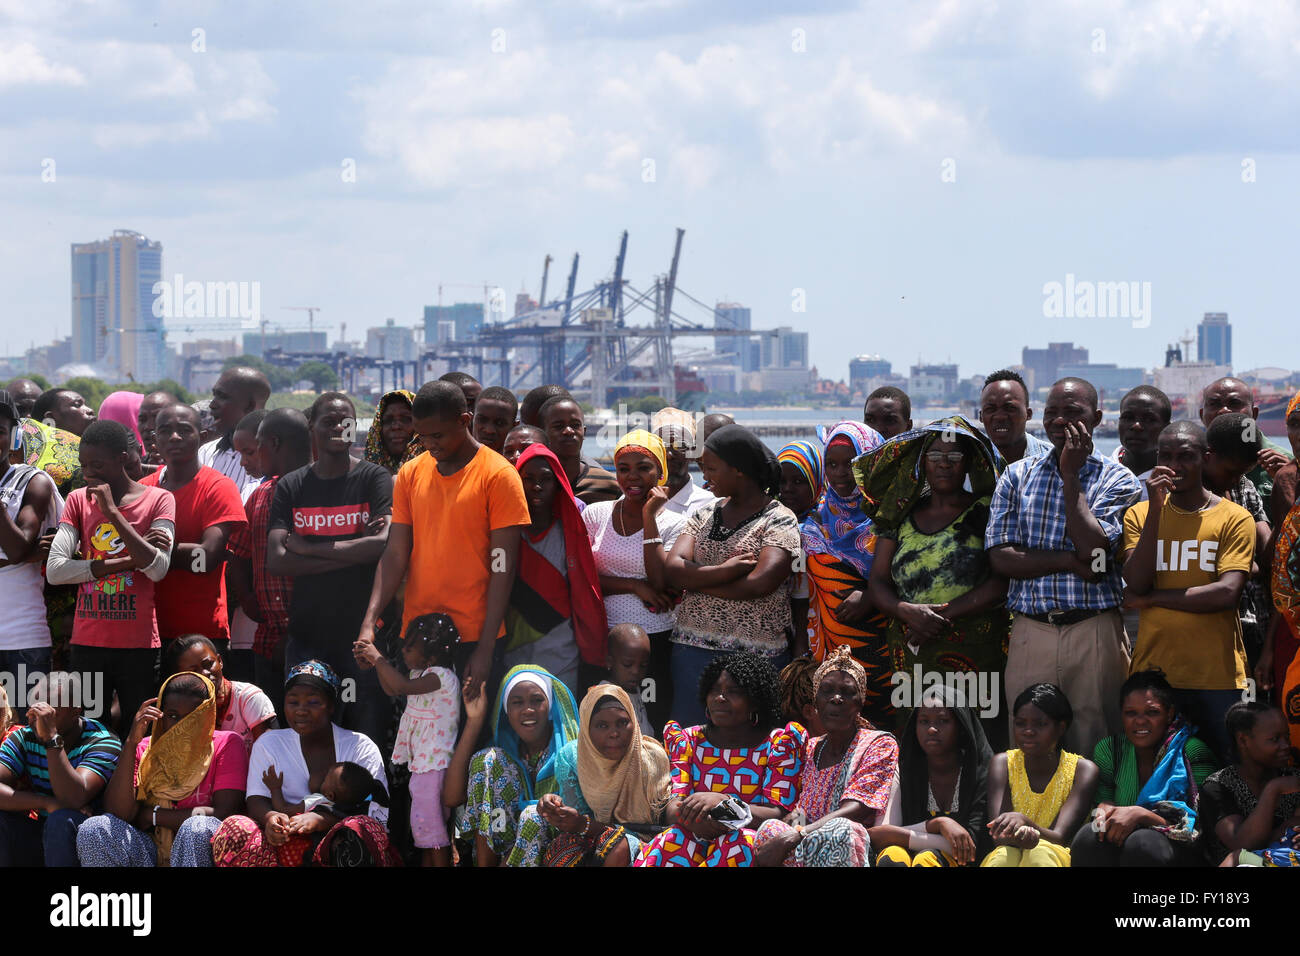 (160419) -- DAR ES SALAAM, April 19, 2016 (Xinhua) -- Local people gather to attend the inauguration of Kigamboni - Stock Image